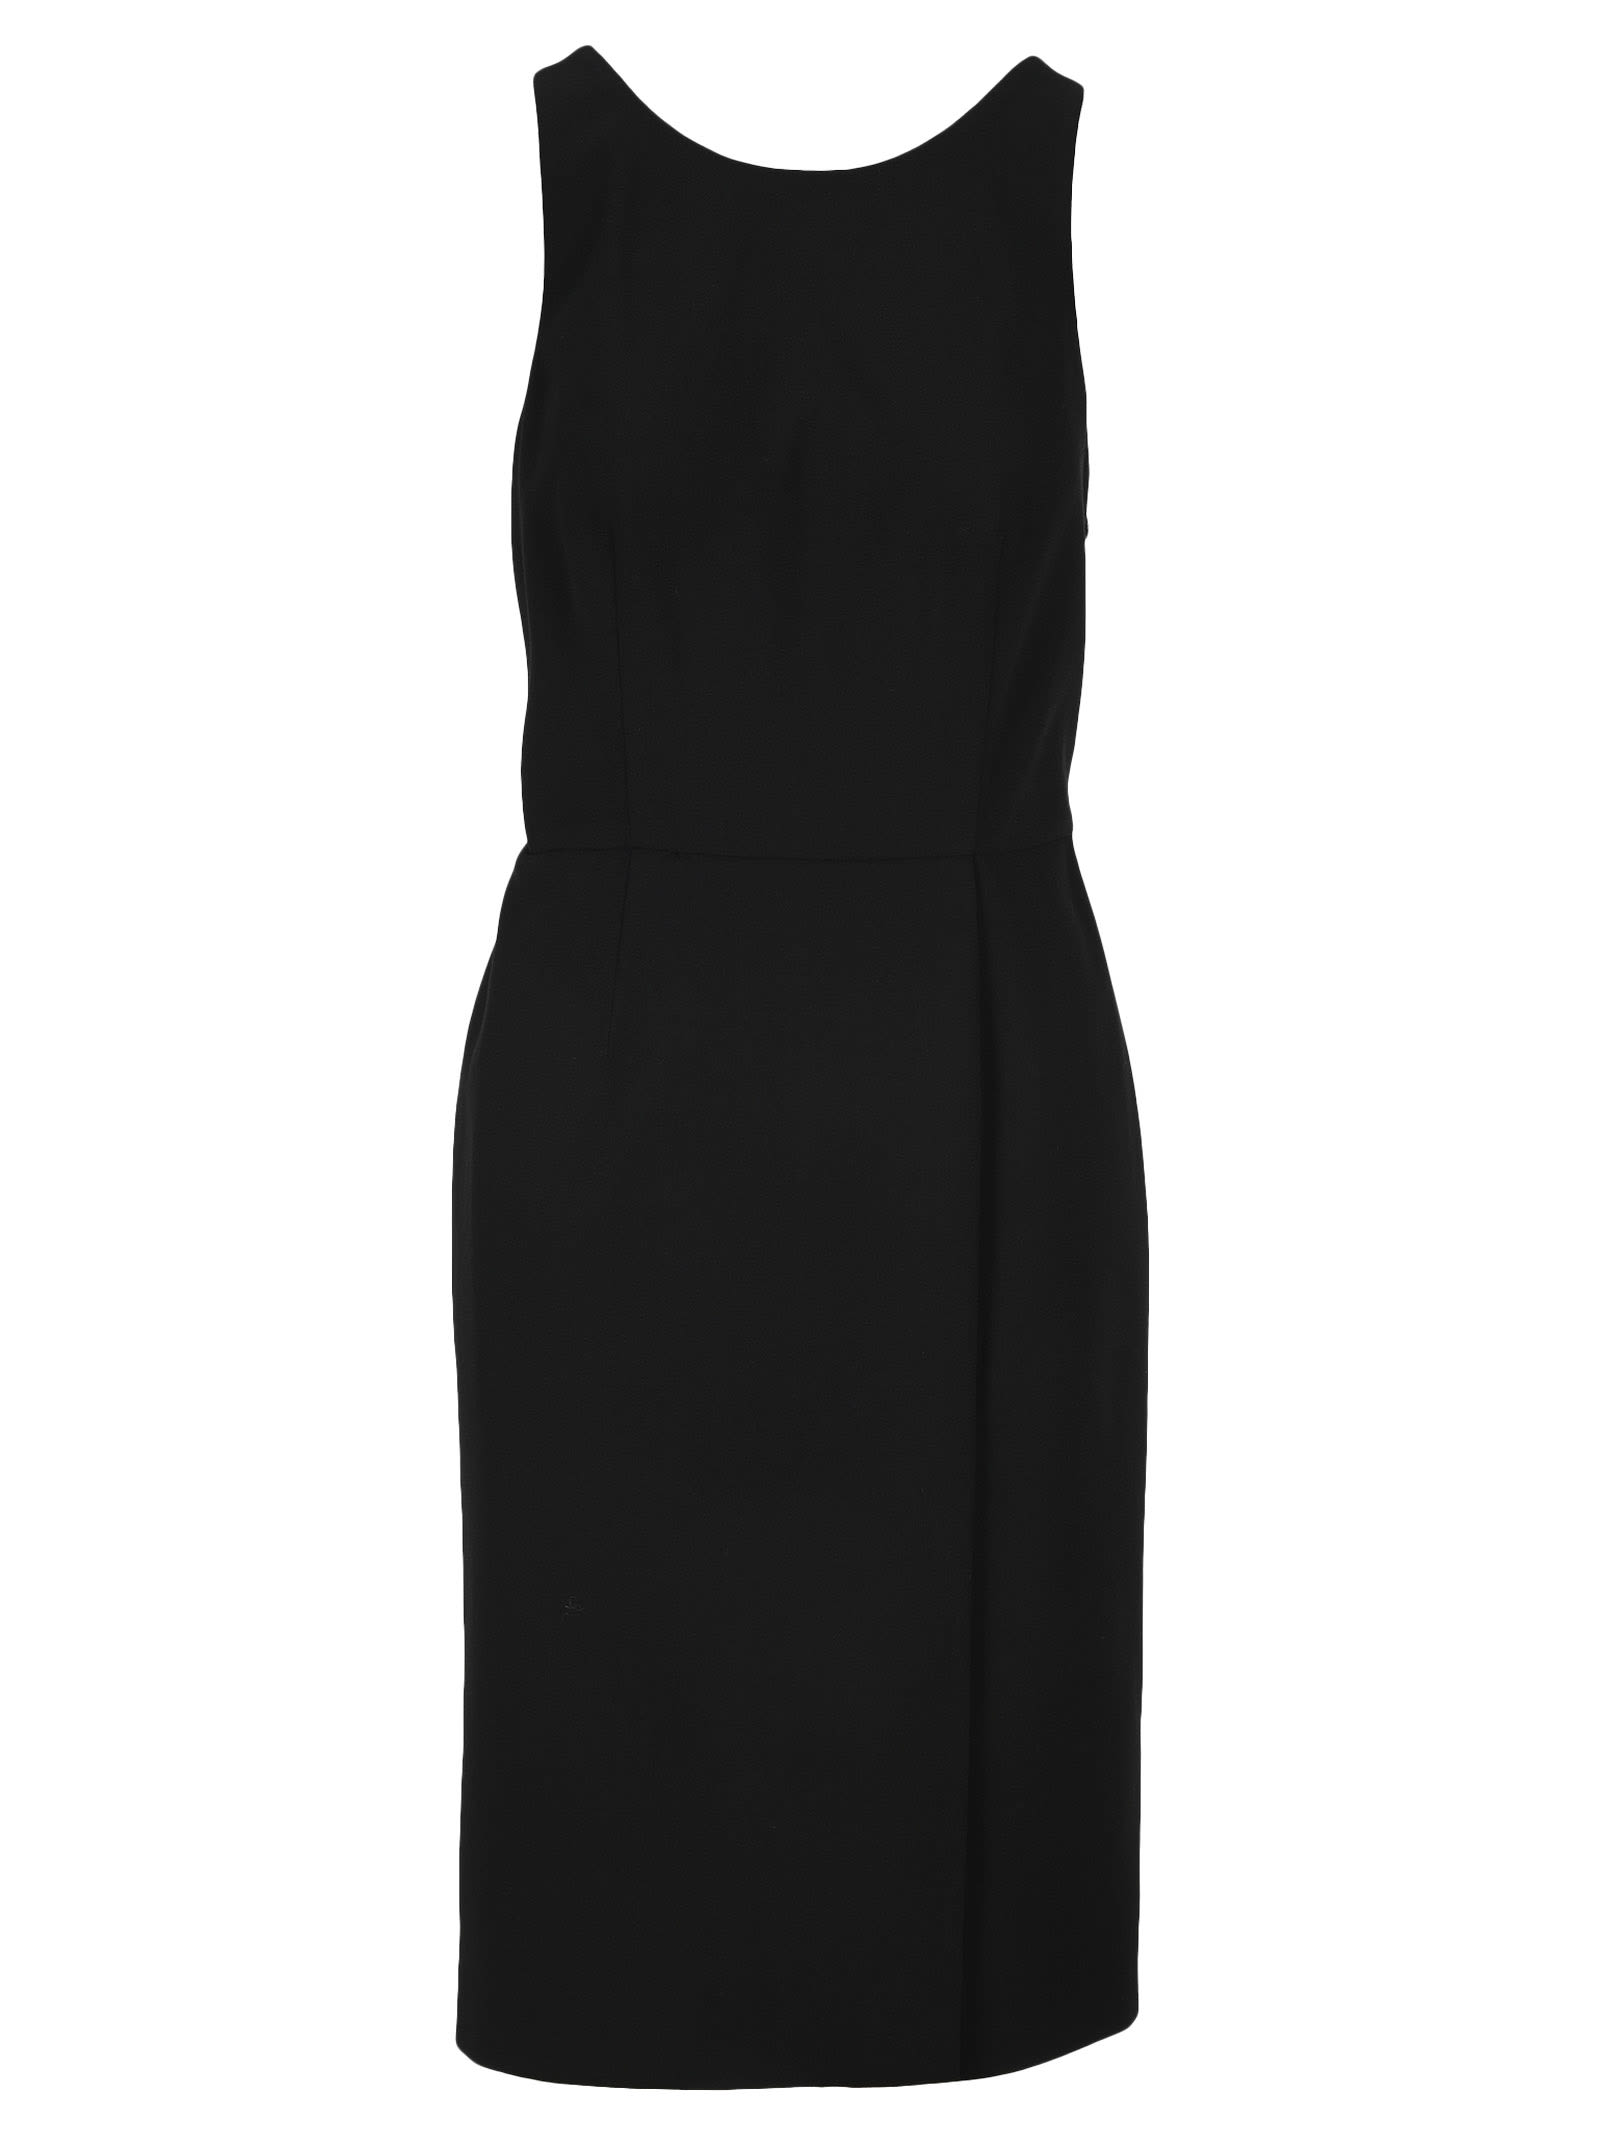 Buy Givenchy Graphic Neck Line Dress online, shop Givenchy with free shipping